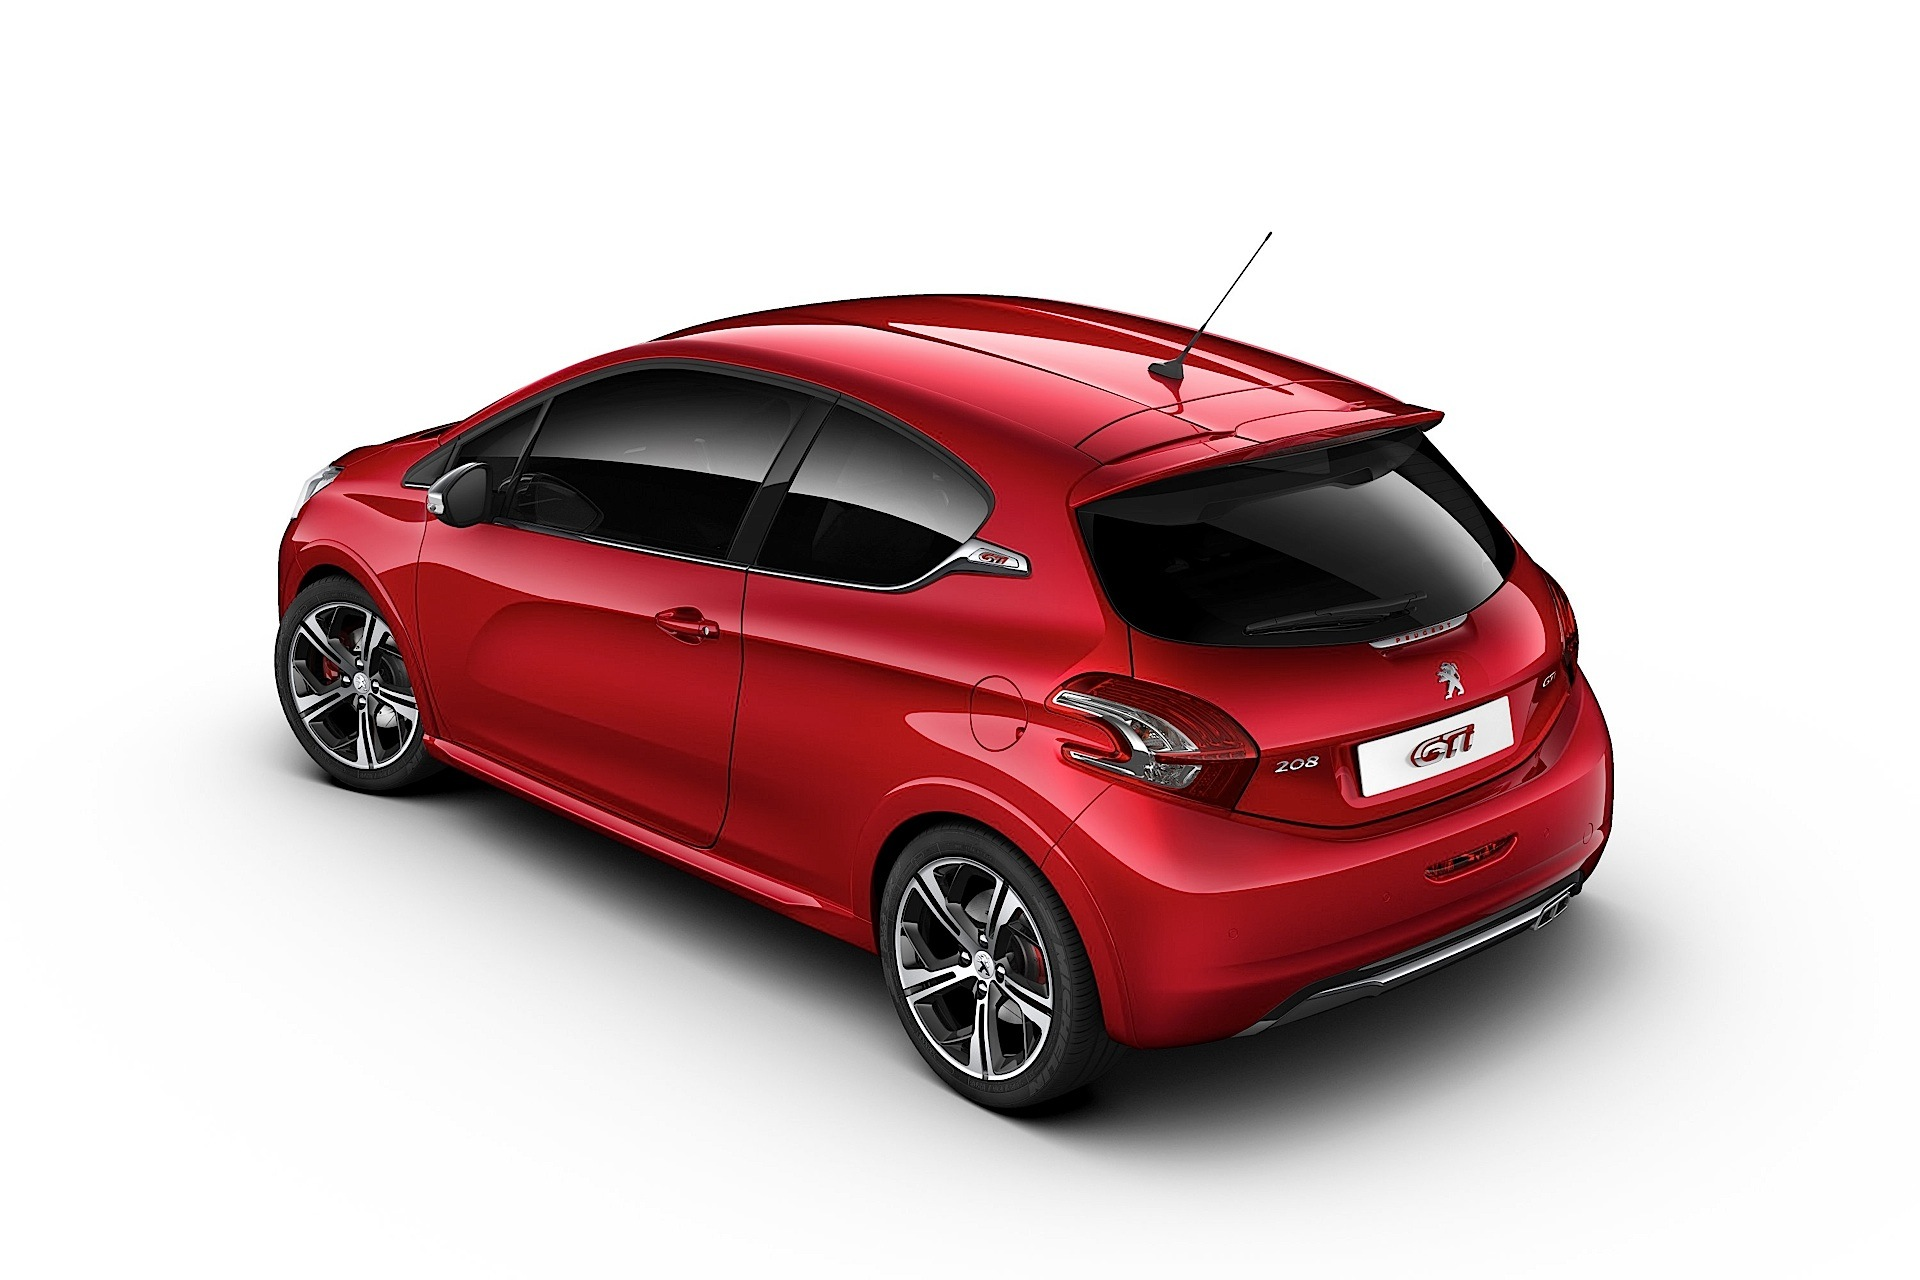 peugeot 208 gti specs 2013 2014 2015 2016 2017 2018 autoevolution. Black Bedroom Furniture Sets. Home Design Ideas